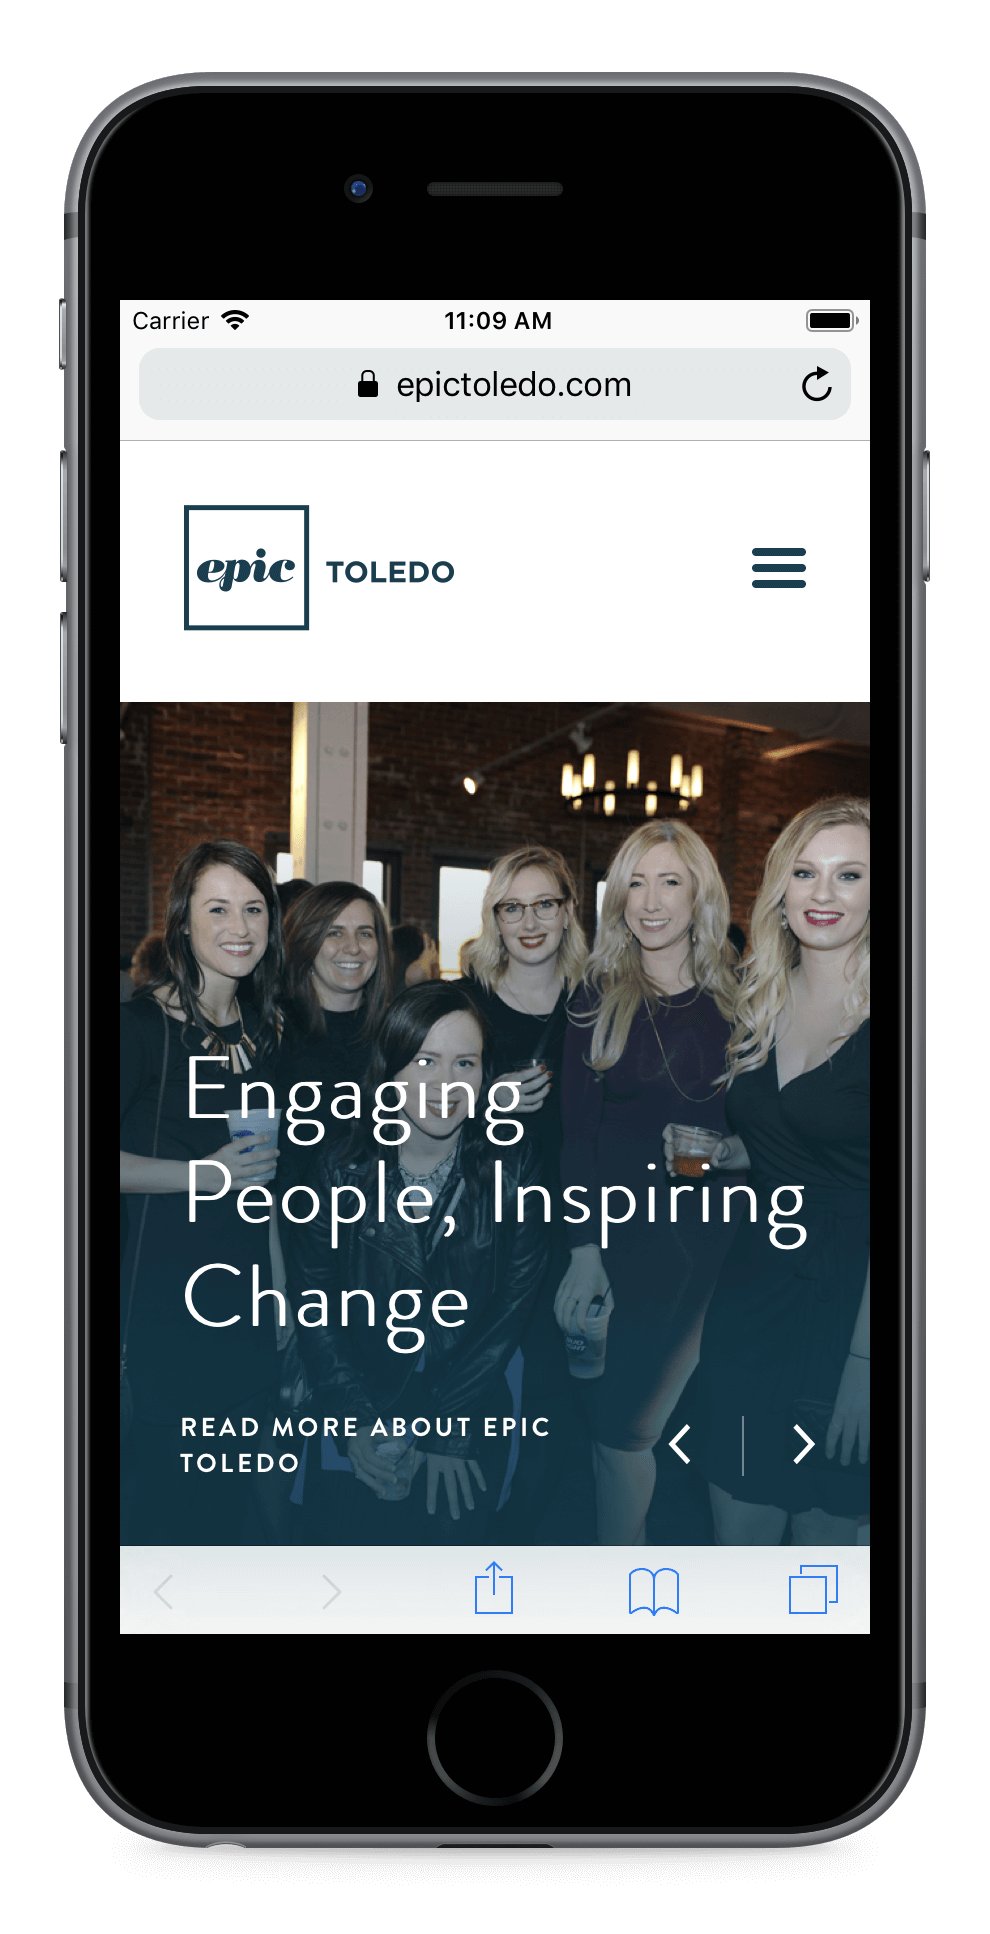 An apple iPhone showcasing the new epic toledo website